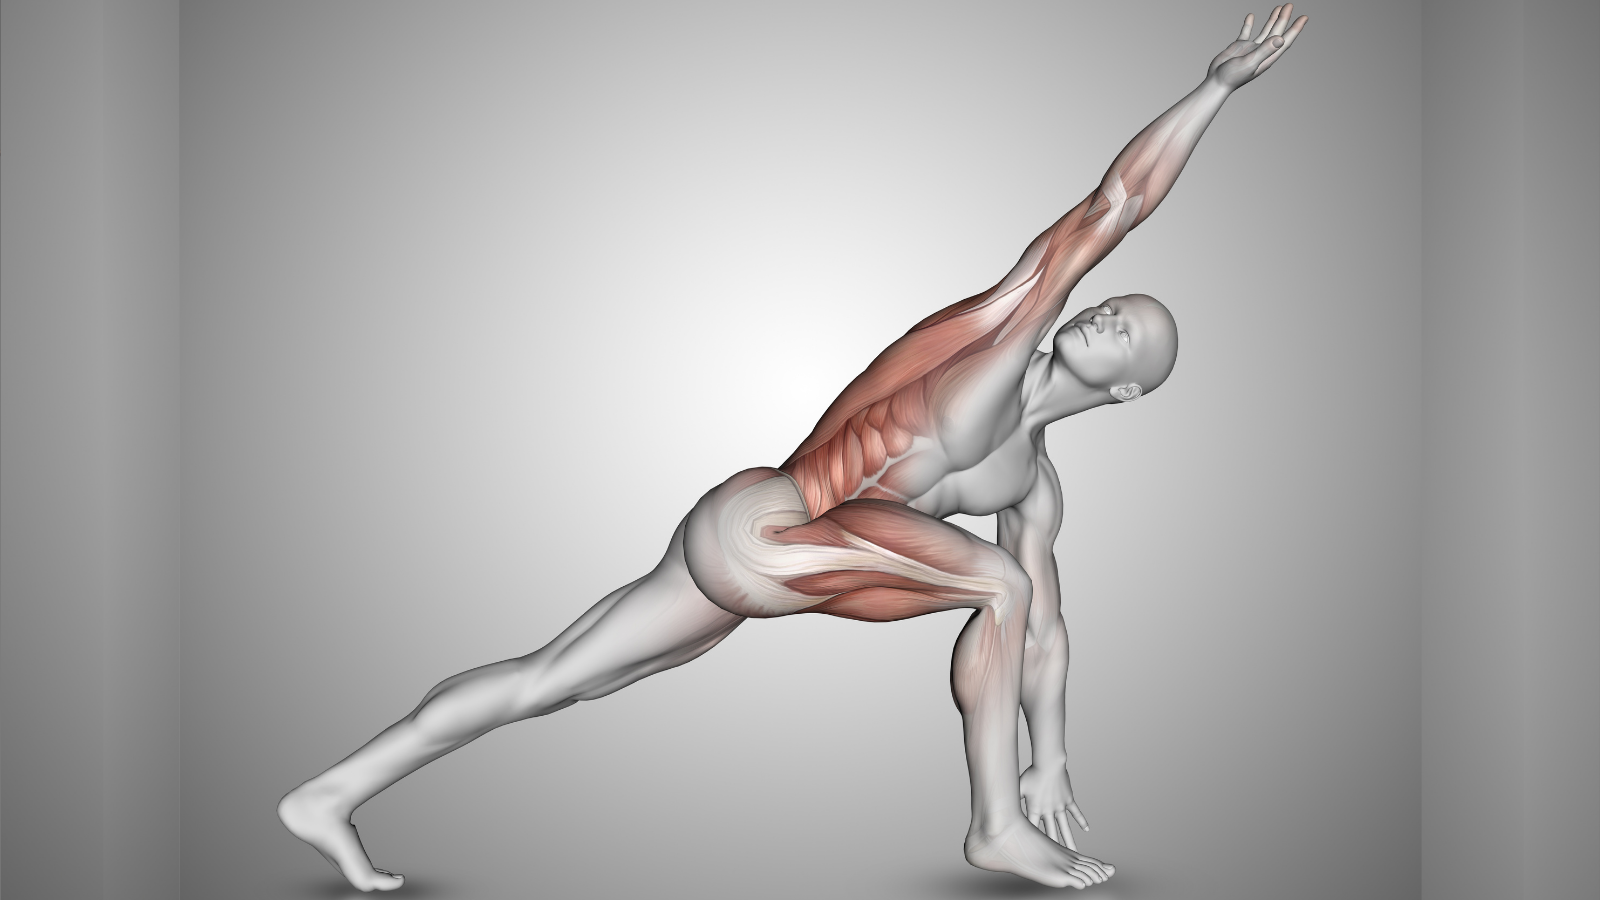 Yoga teacher tips for sharing yoga anatomy with your students